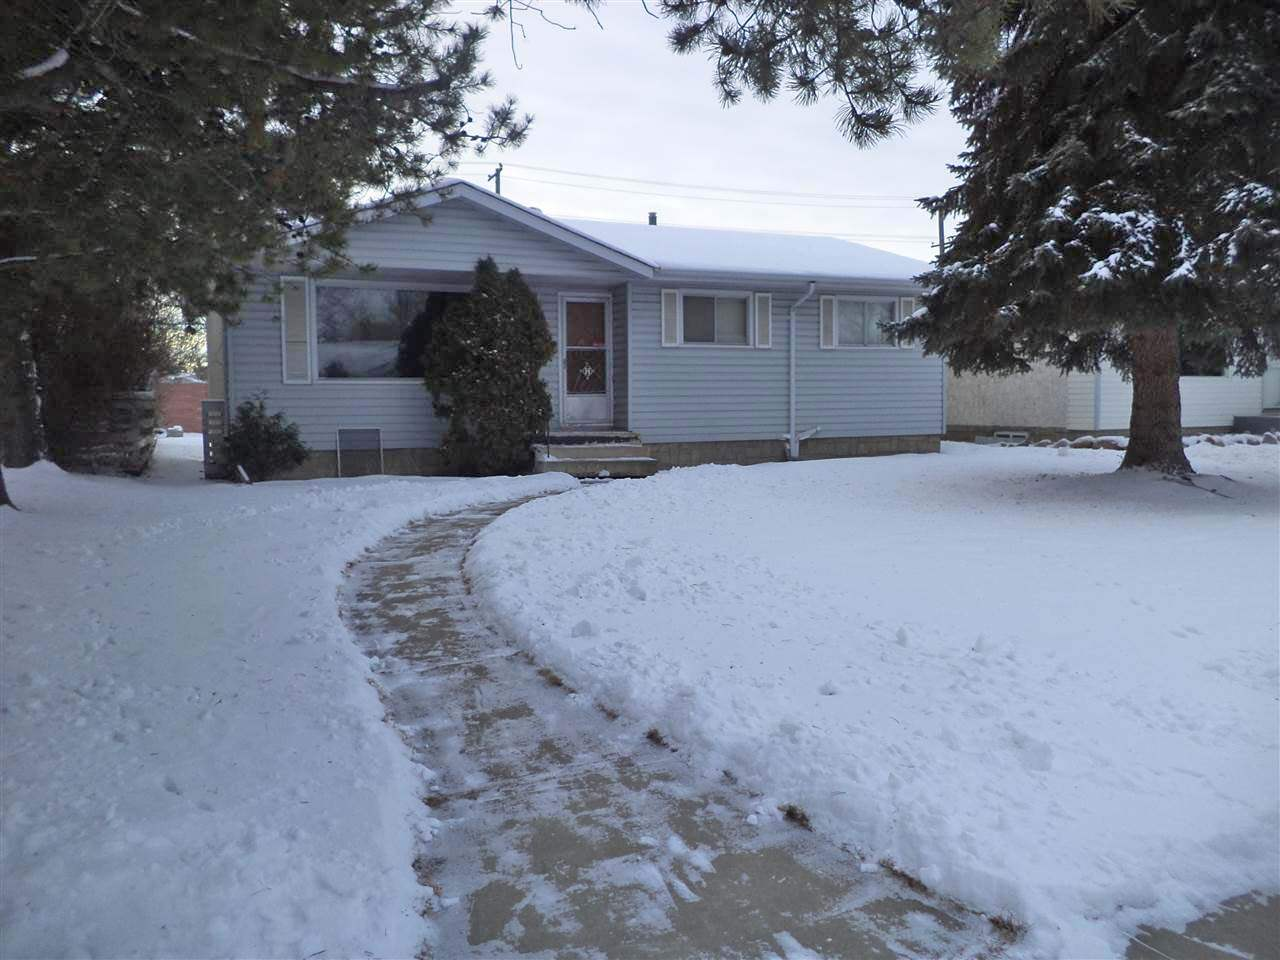 Nice 1033 sqft bungalow in the community of Elmwood. 3 bedrooms and a full 4 piece bath. New furnace and hot water tank and laminate flooring in living room. Double detached garage. Situated on a large lot. Perfect for the first time buyer or investor. Needs some TLC